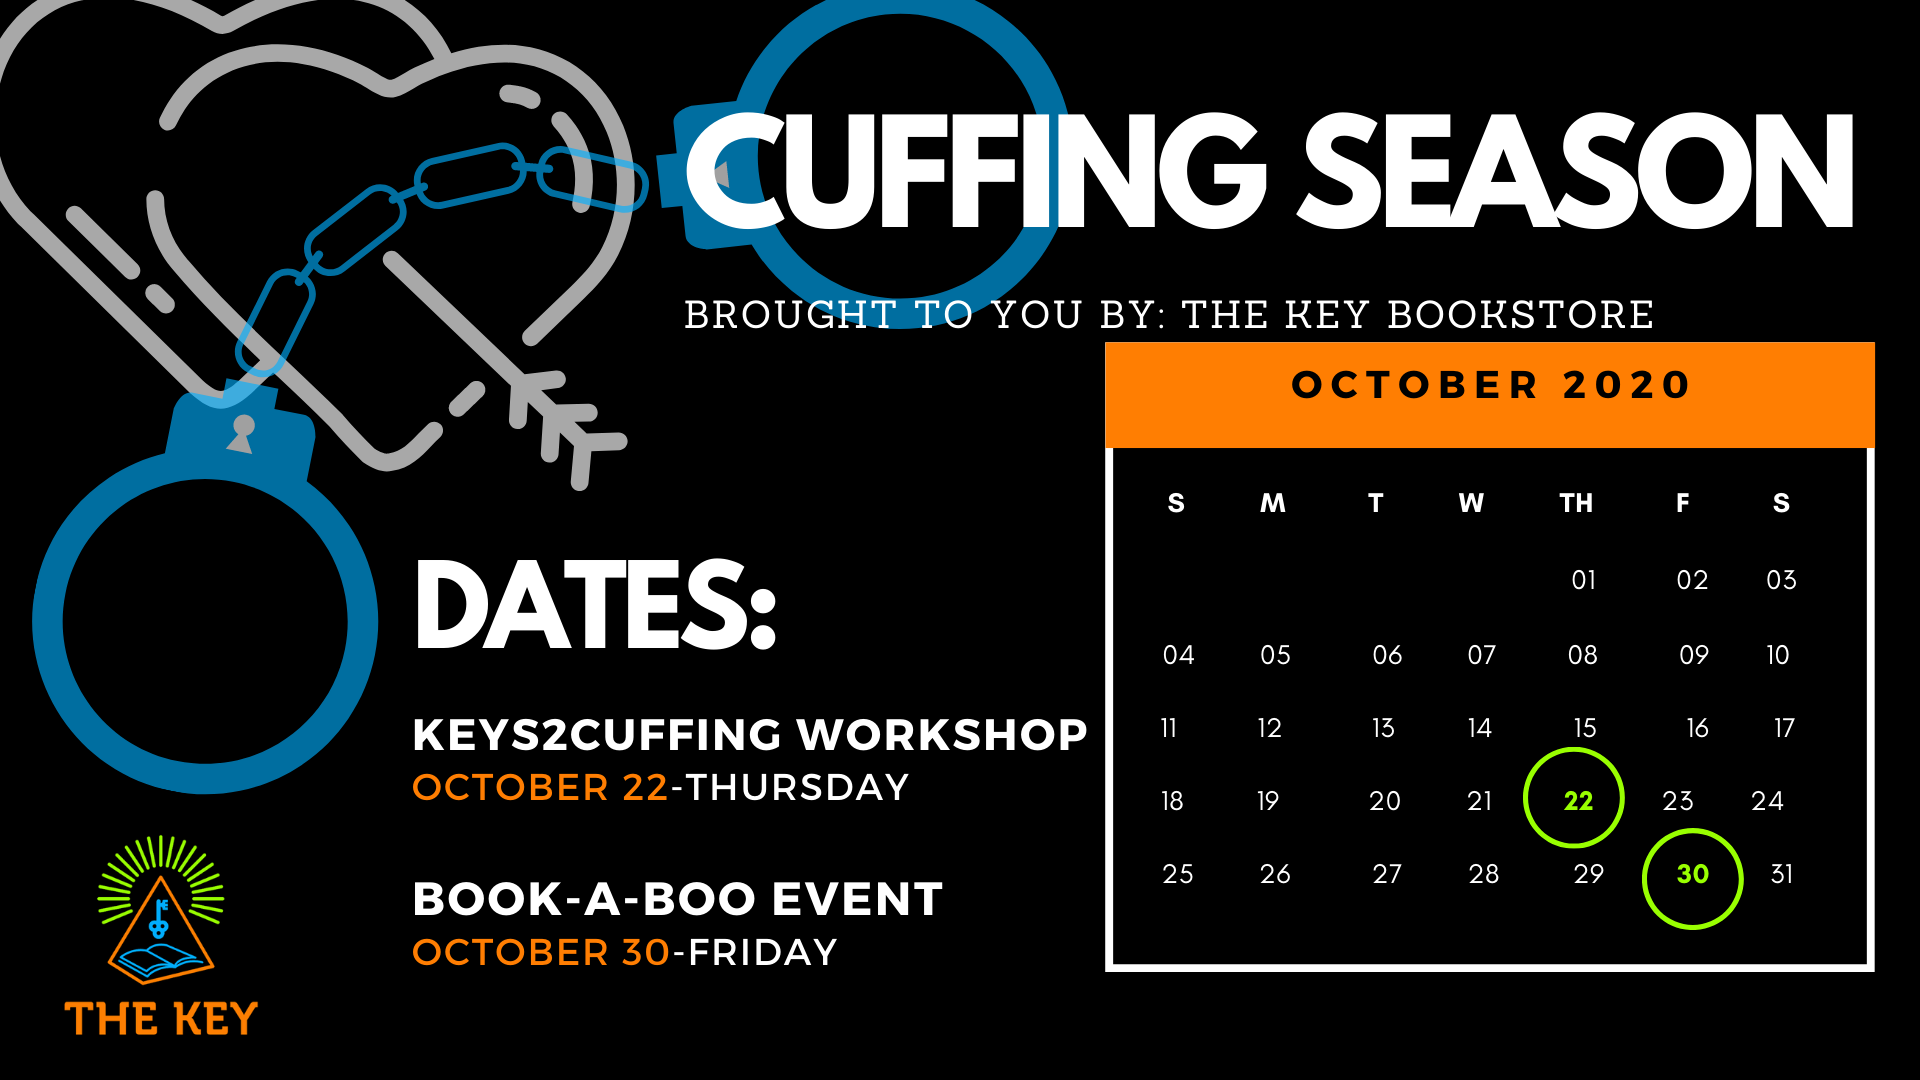 Keys2Cuffing Workshop The Key Bookstore